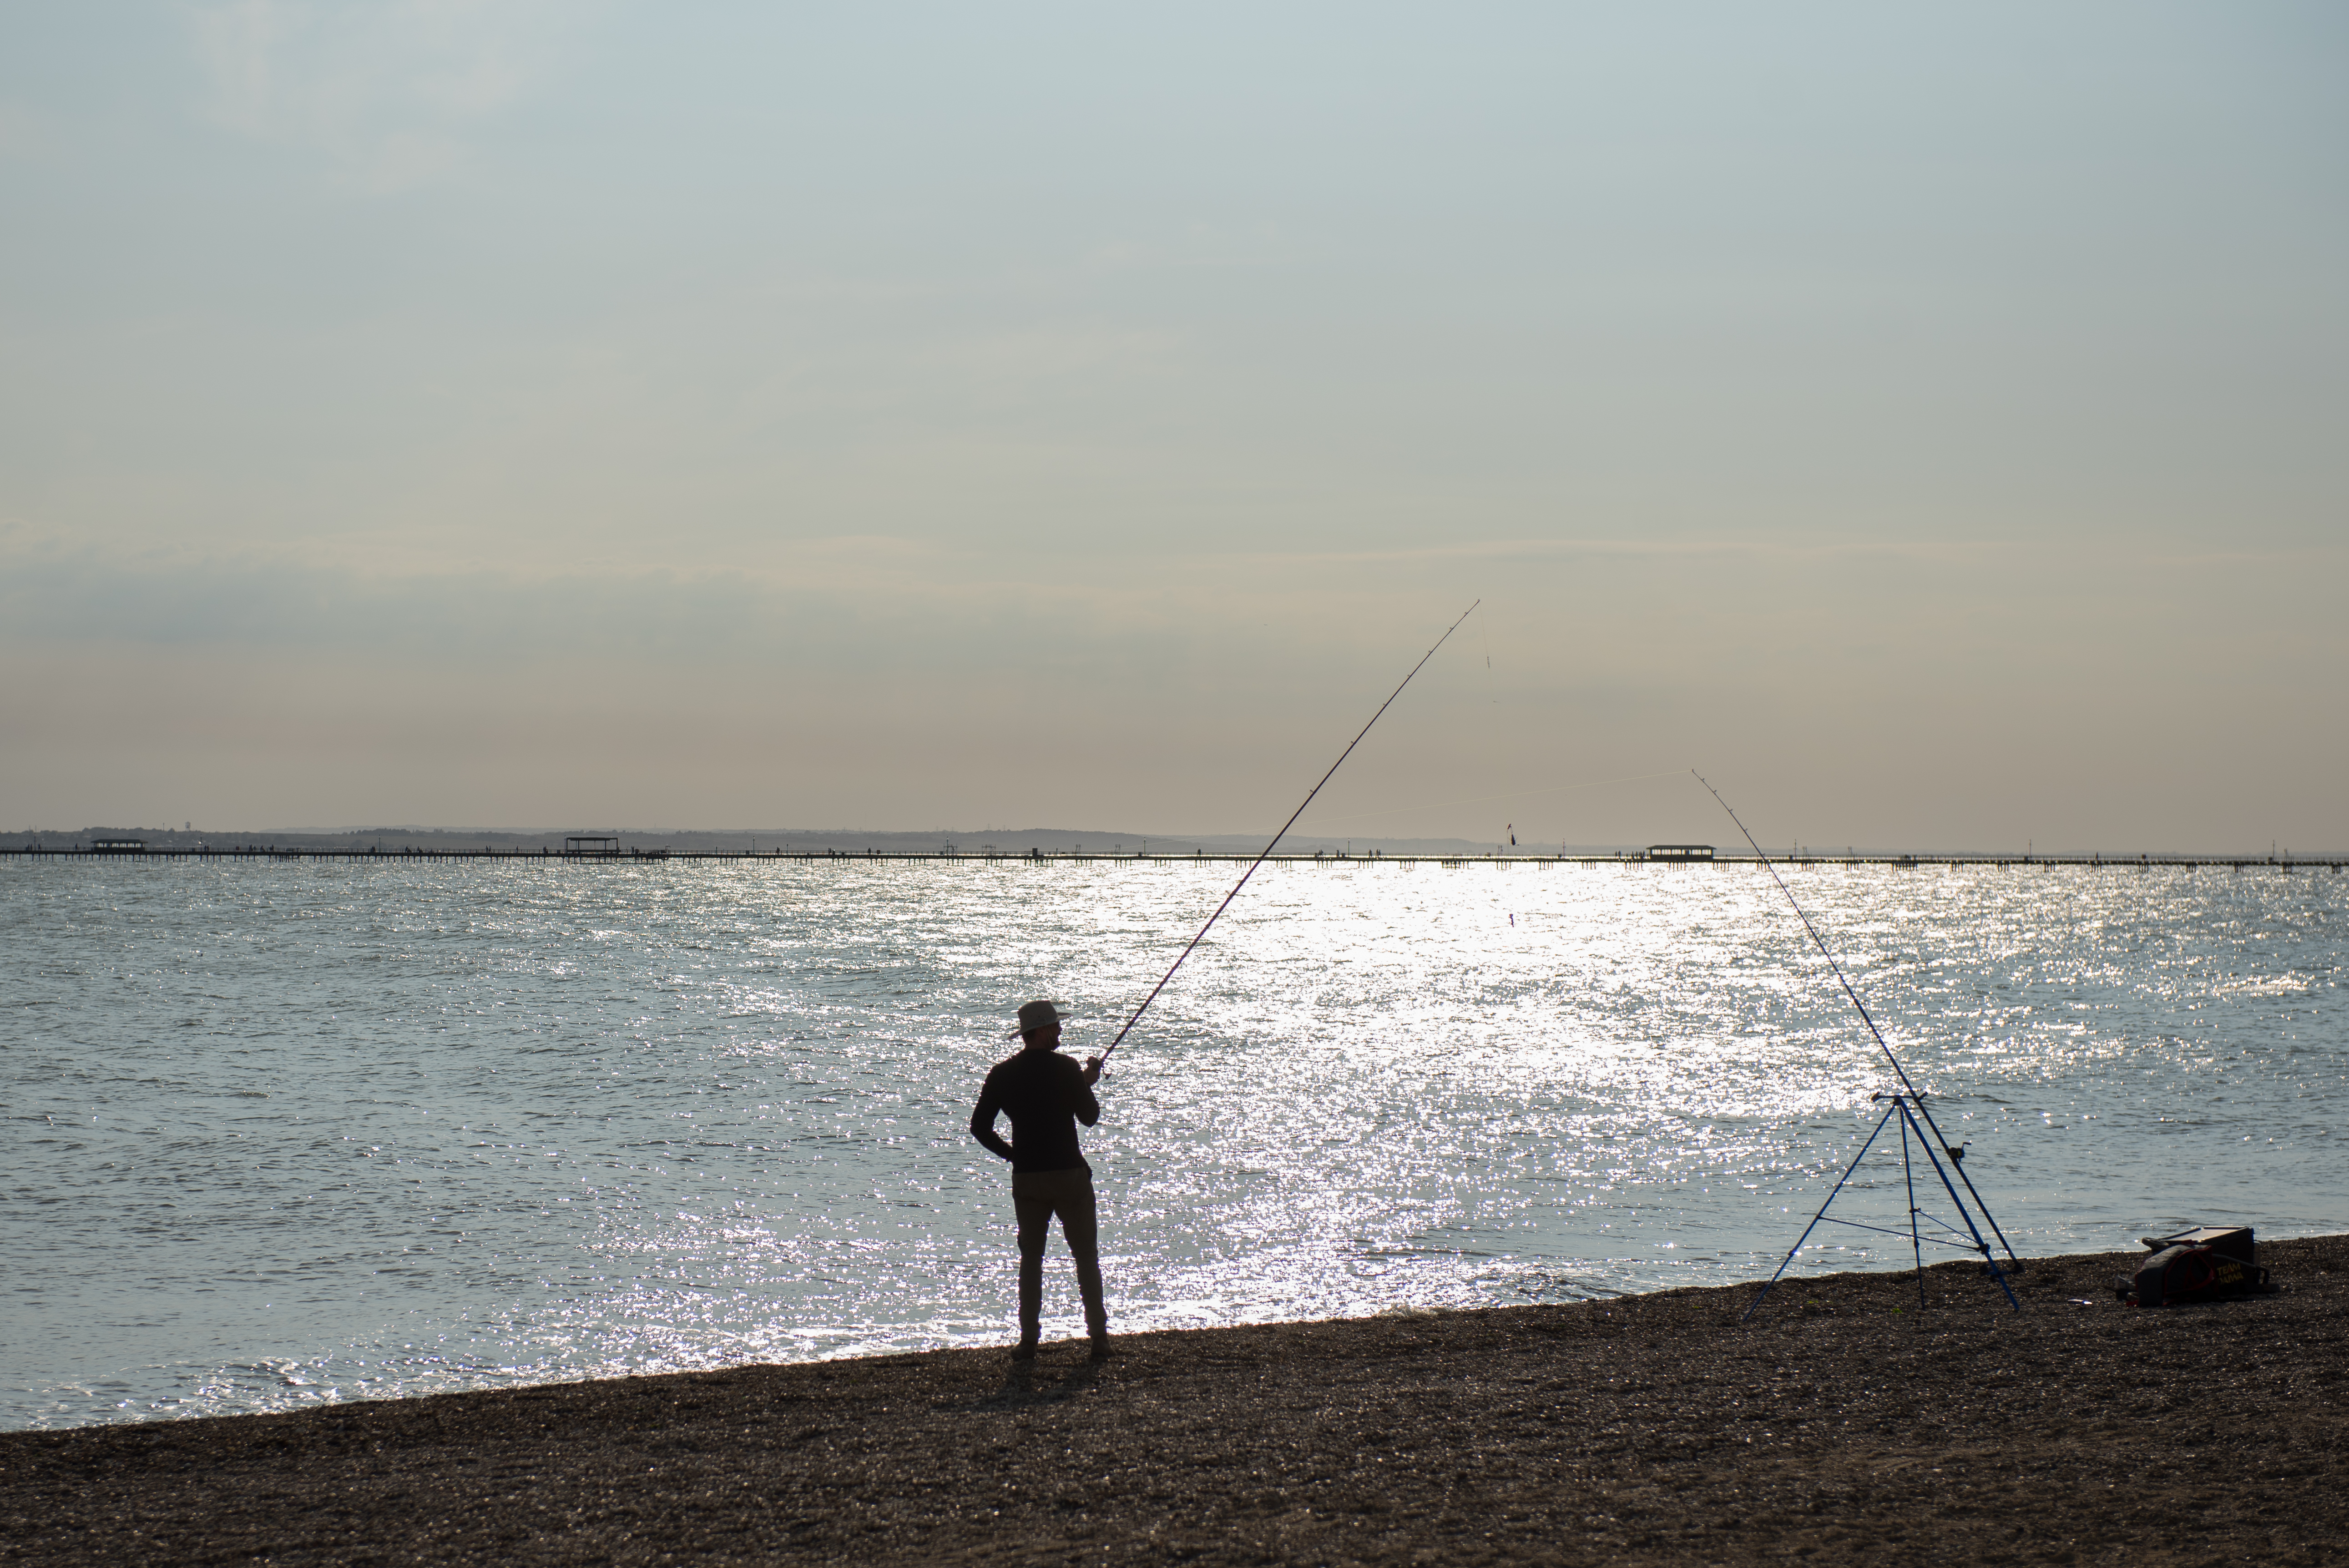 SOUTHEND-ON-SEA, ENGLAND - SEPTEMBER 20: A man fishes as the sun goes down during recent warm weather on September 20, 2020 in Southend on Sea, London. (Photo by John Keeble/Getty Images)